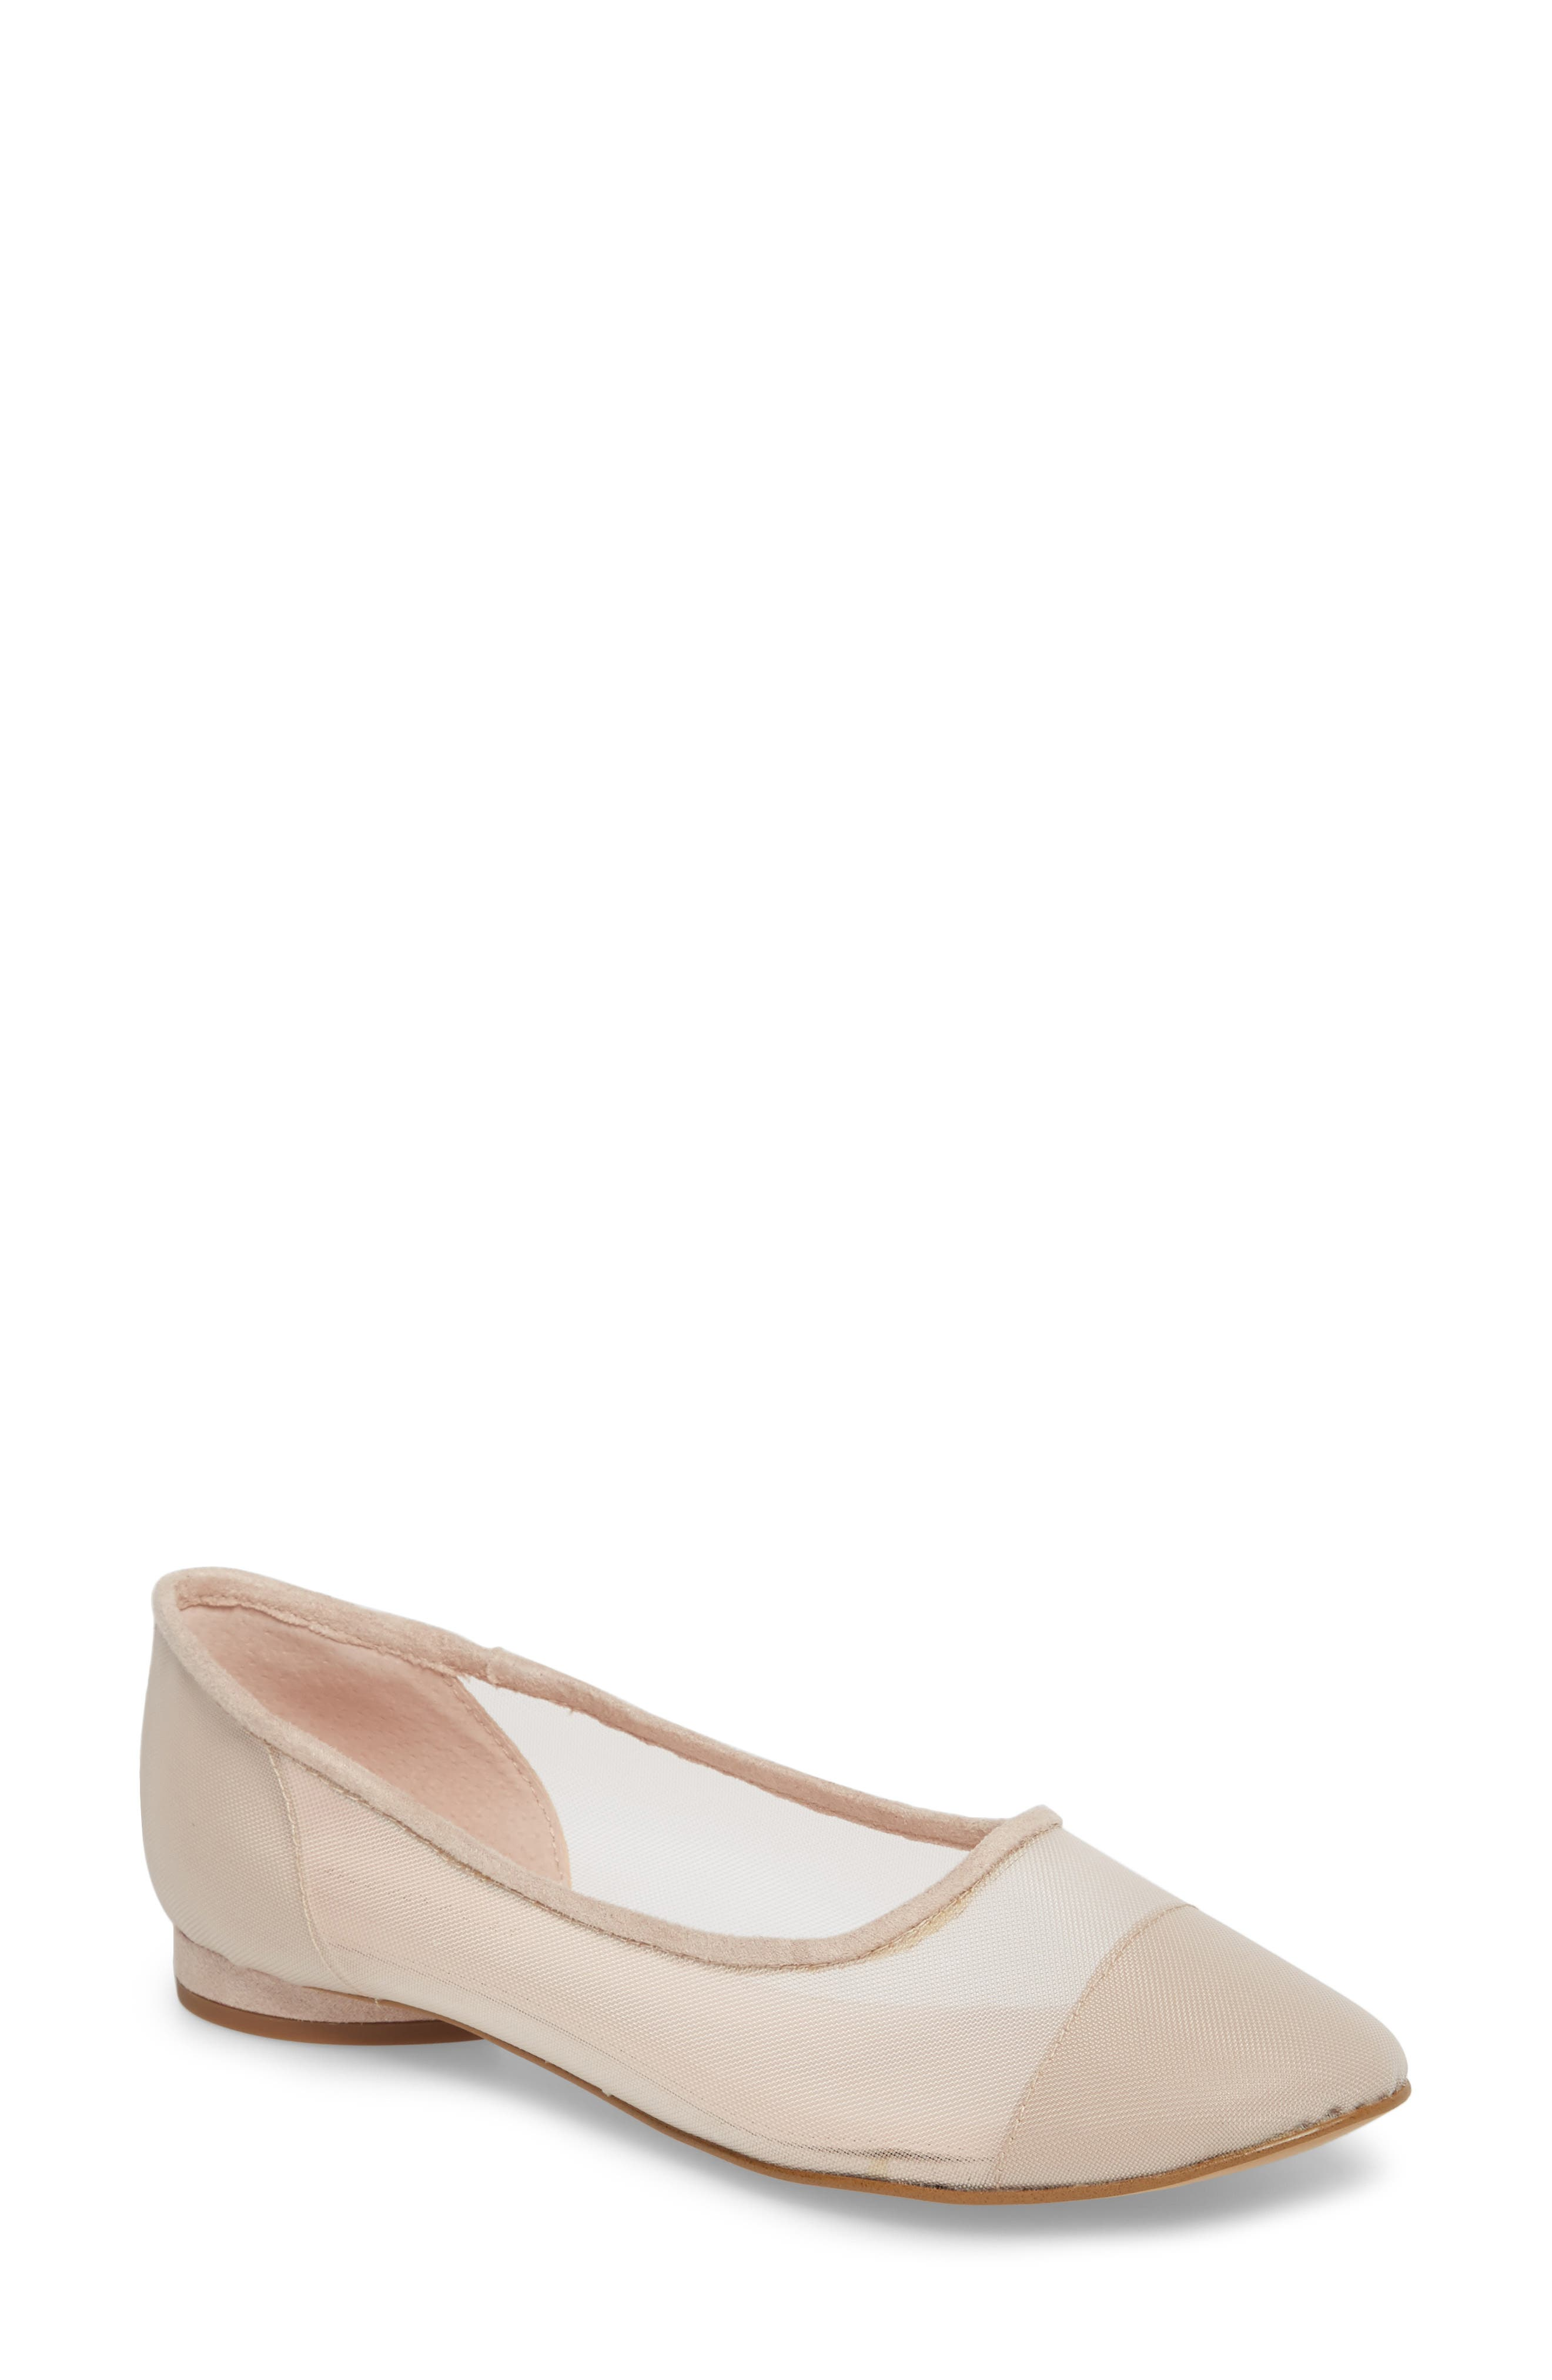 Marian Mesh Inset Flat,                         Main,                         color, Avec Pink Suede